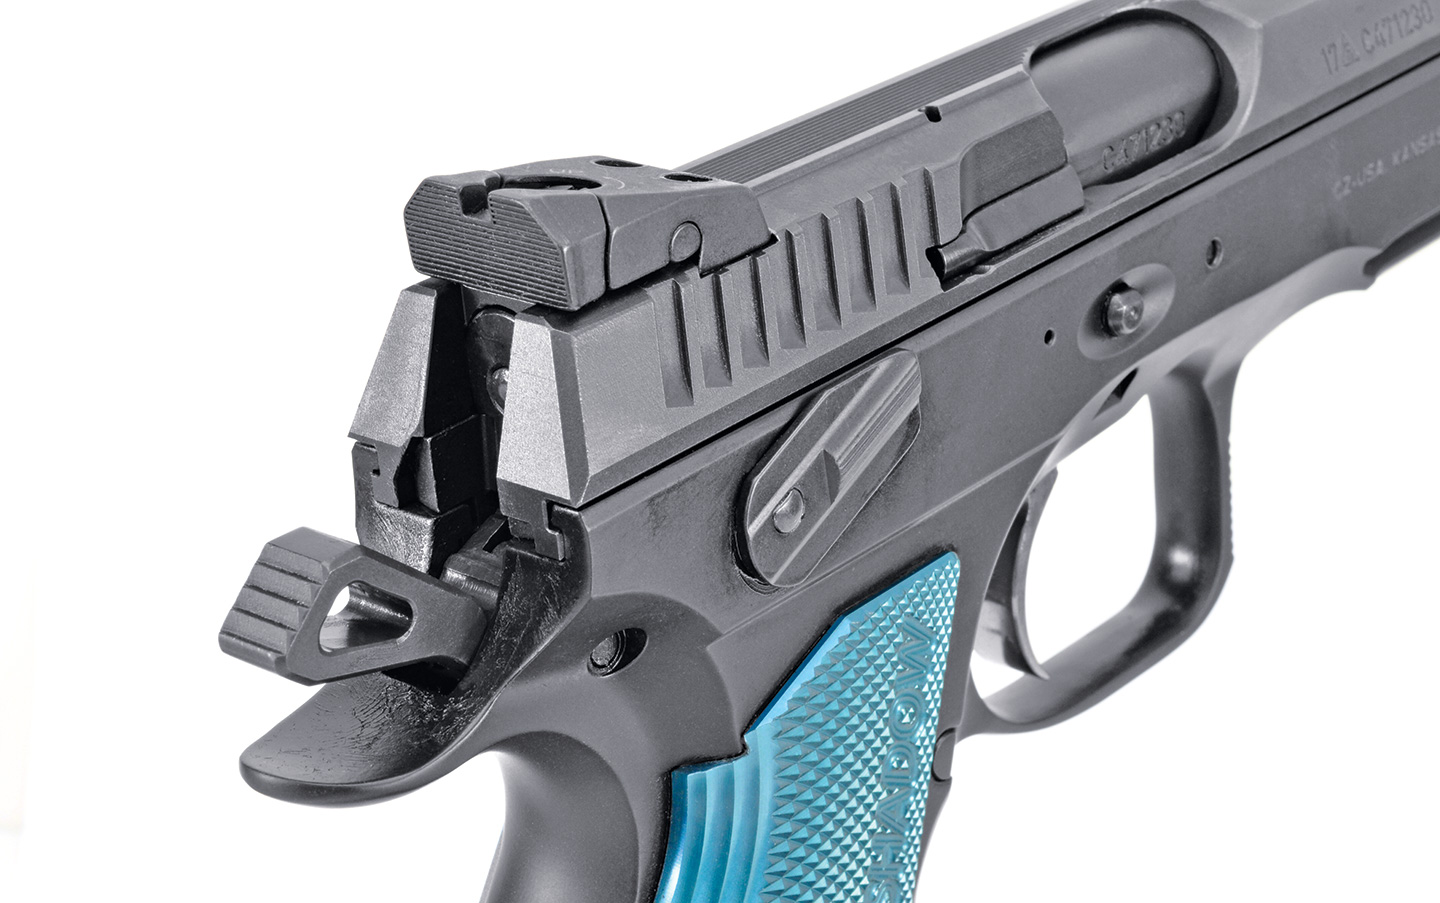 The rear sight is click- and drift-adjustable for windage, and matching flat-bottom serrations are found on the front and back of the slide.